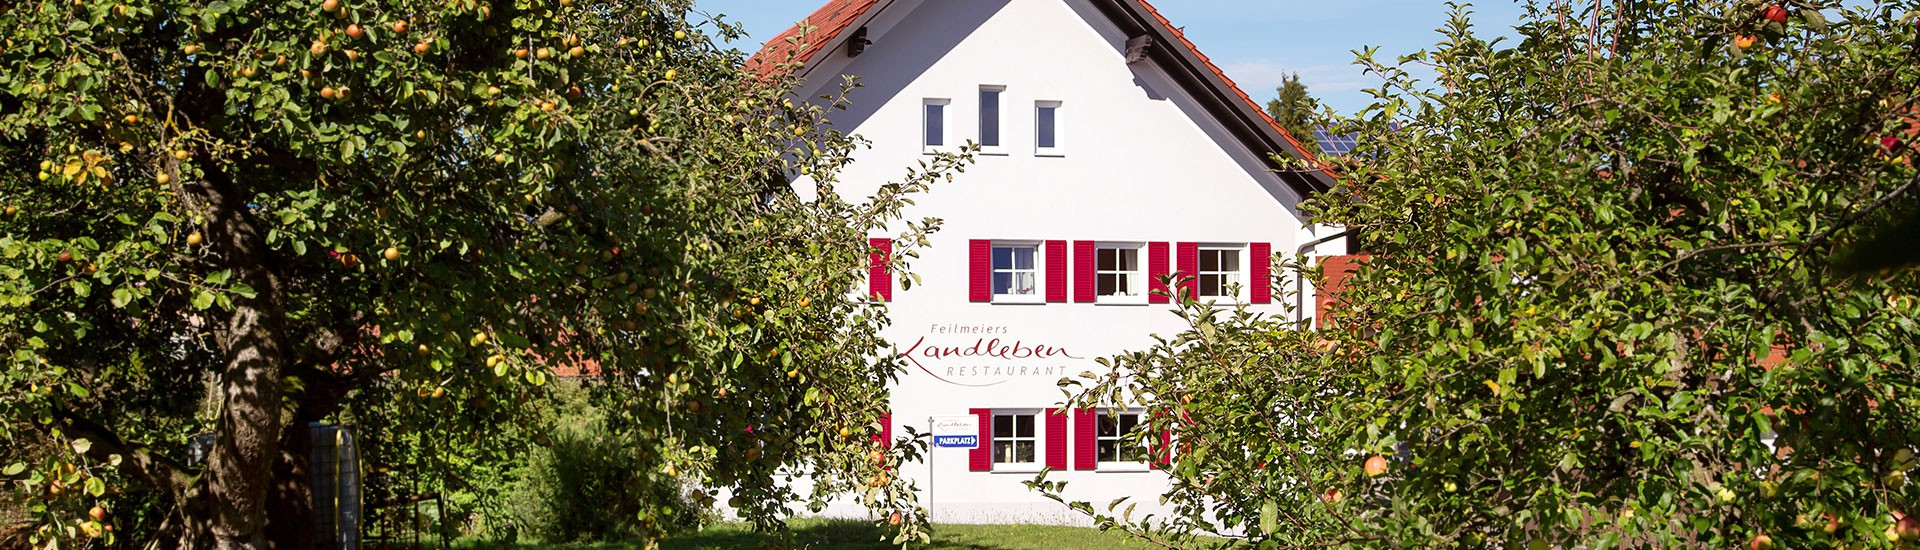 Ein Haus mit <strong>Tradition</strong>